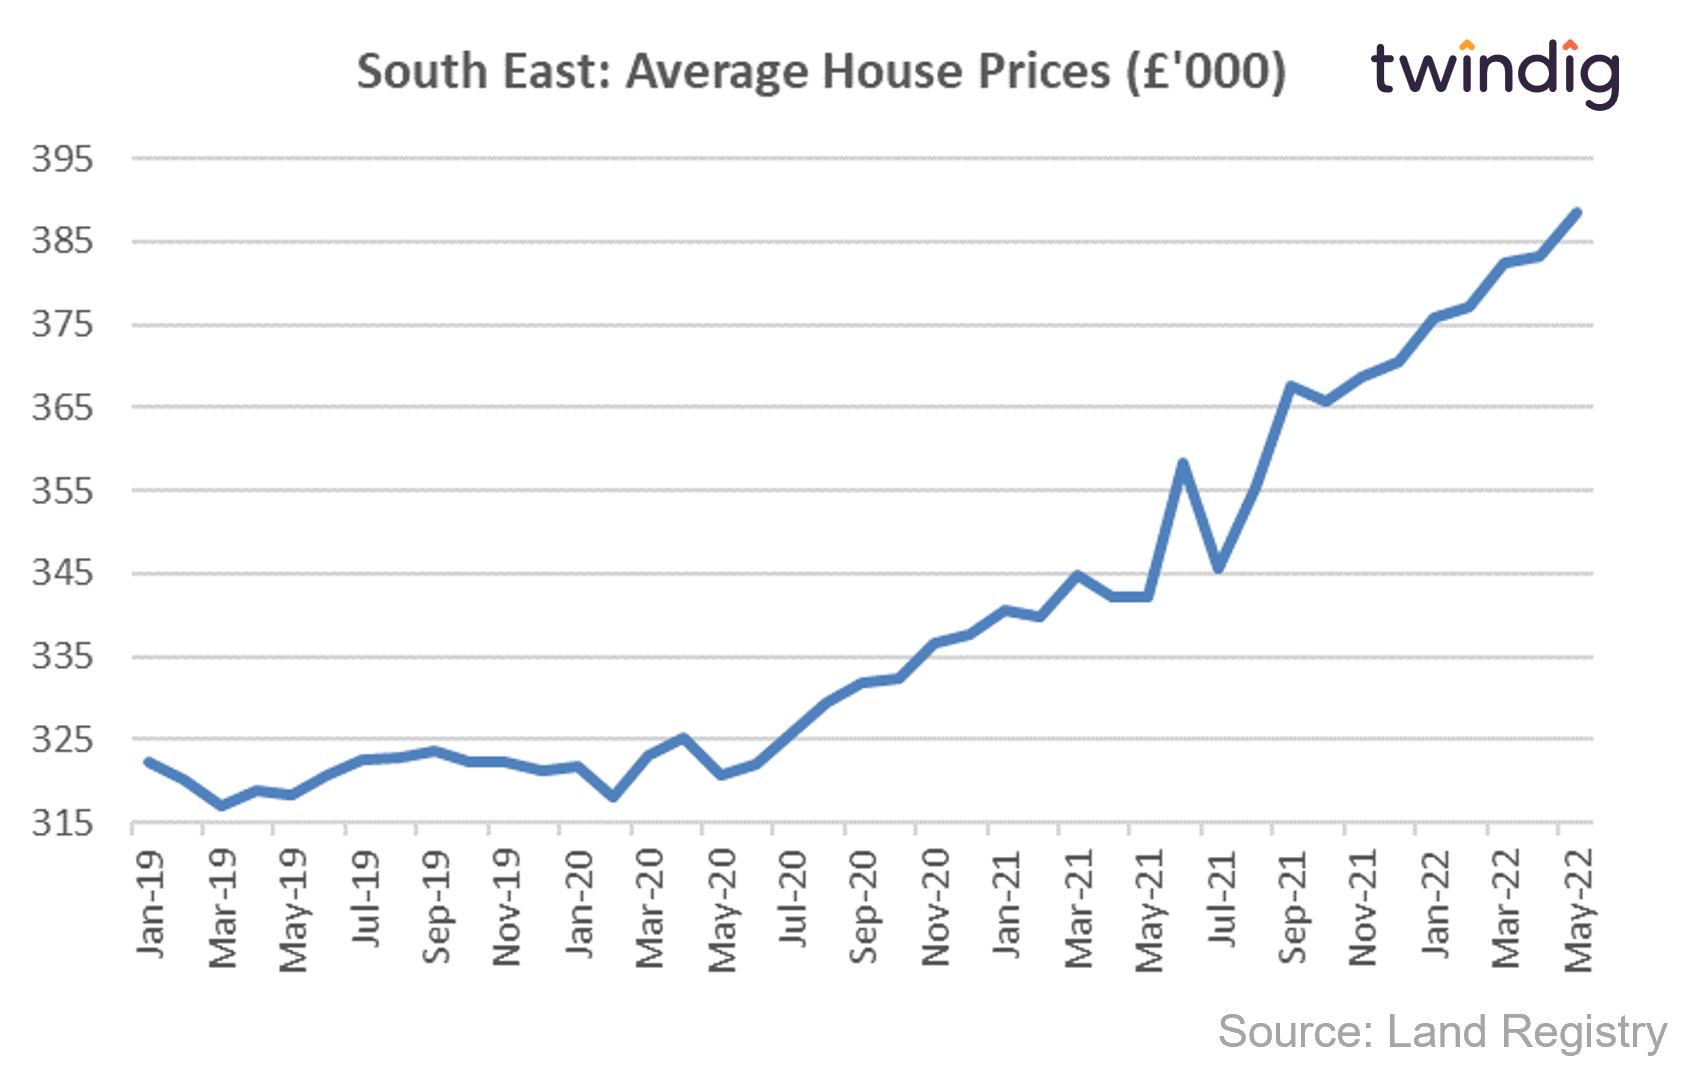 House price graph chart showing average house prices in the South East